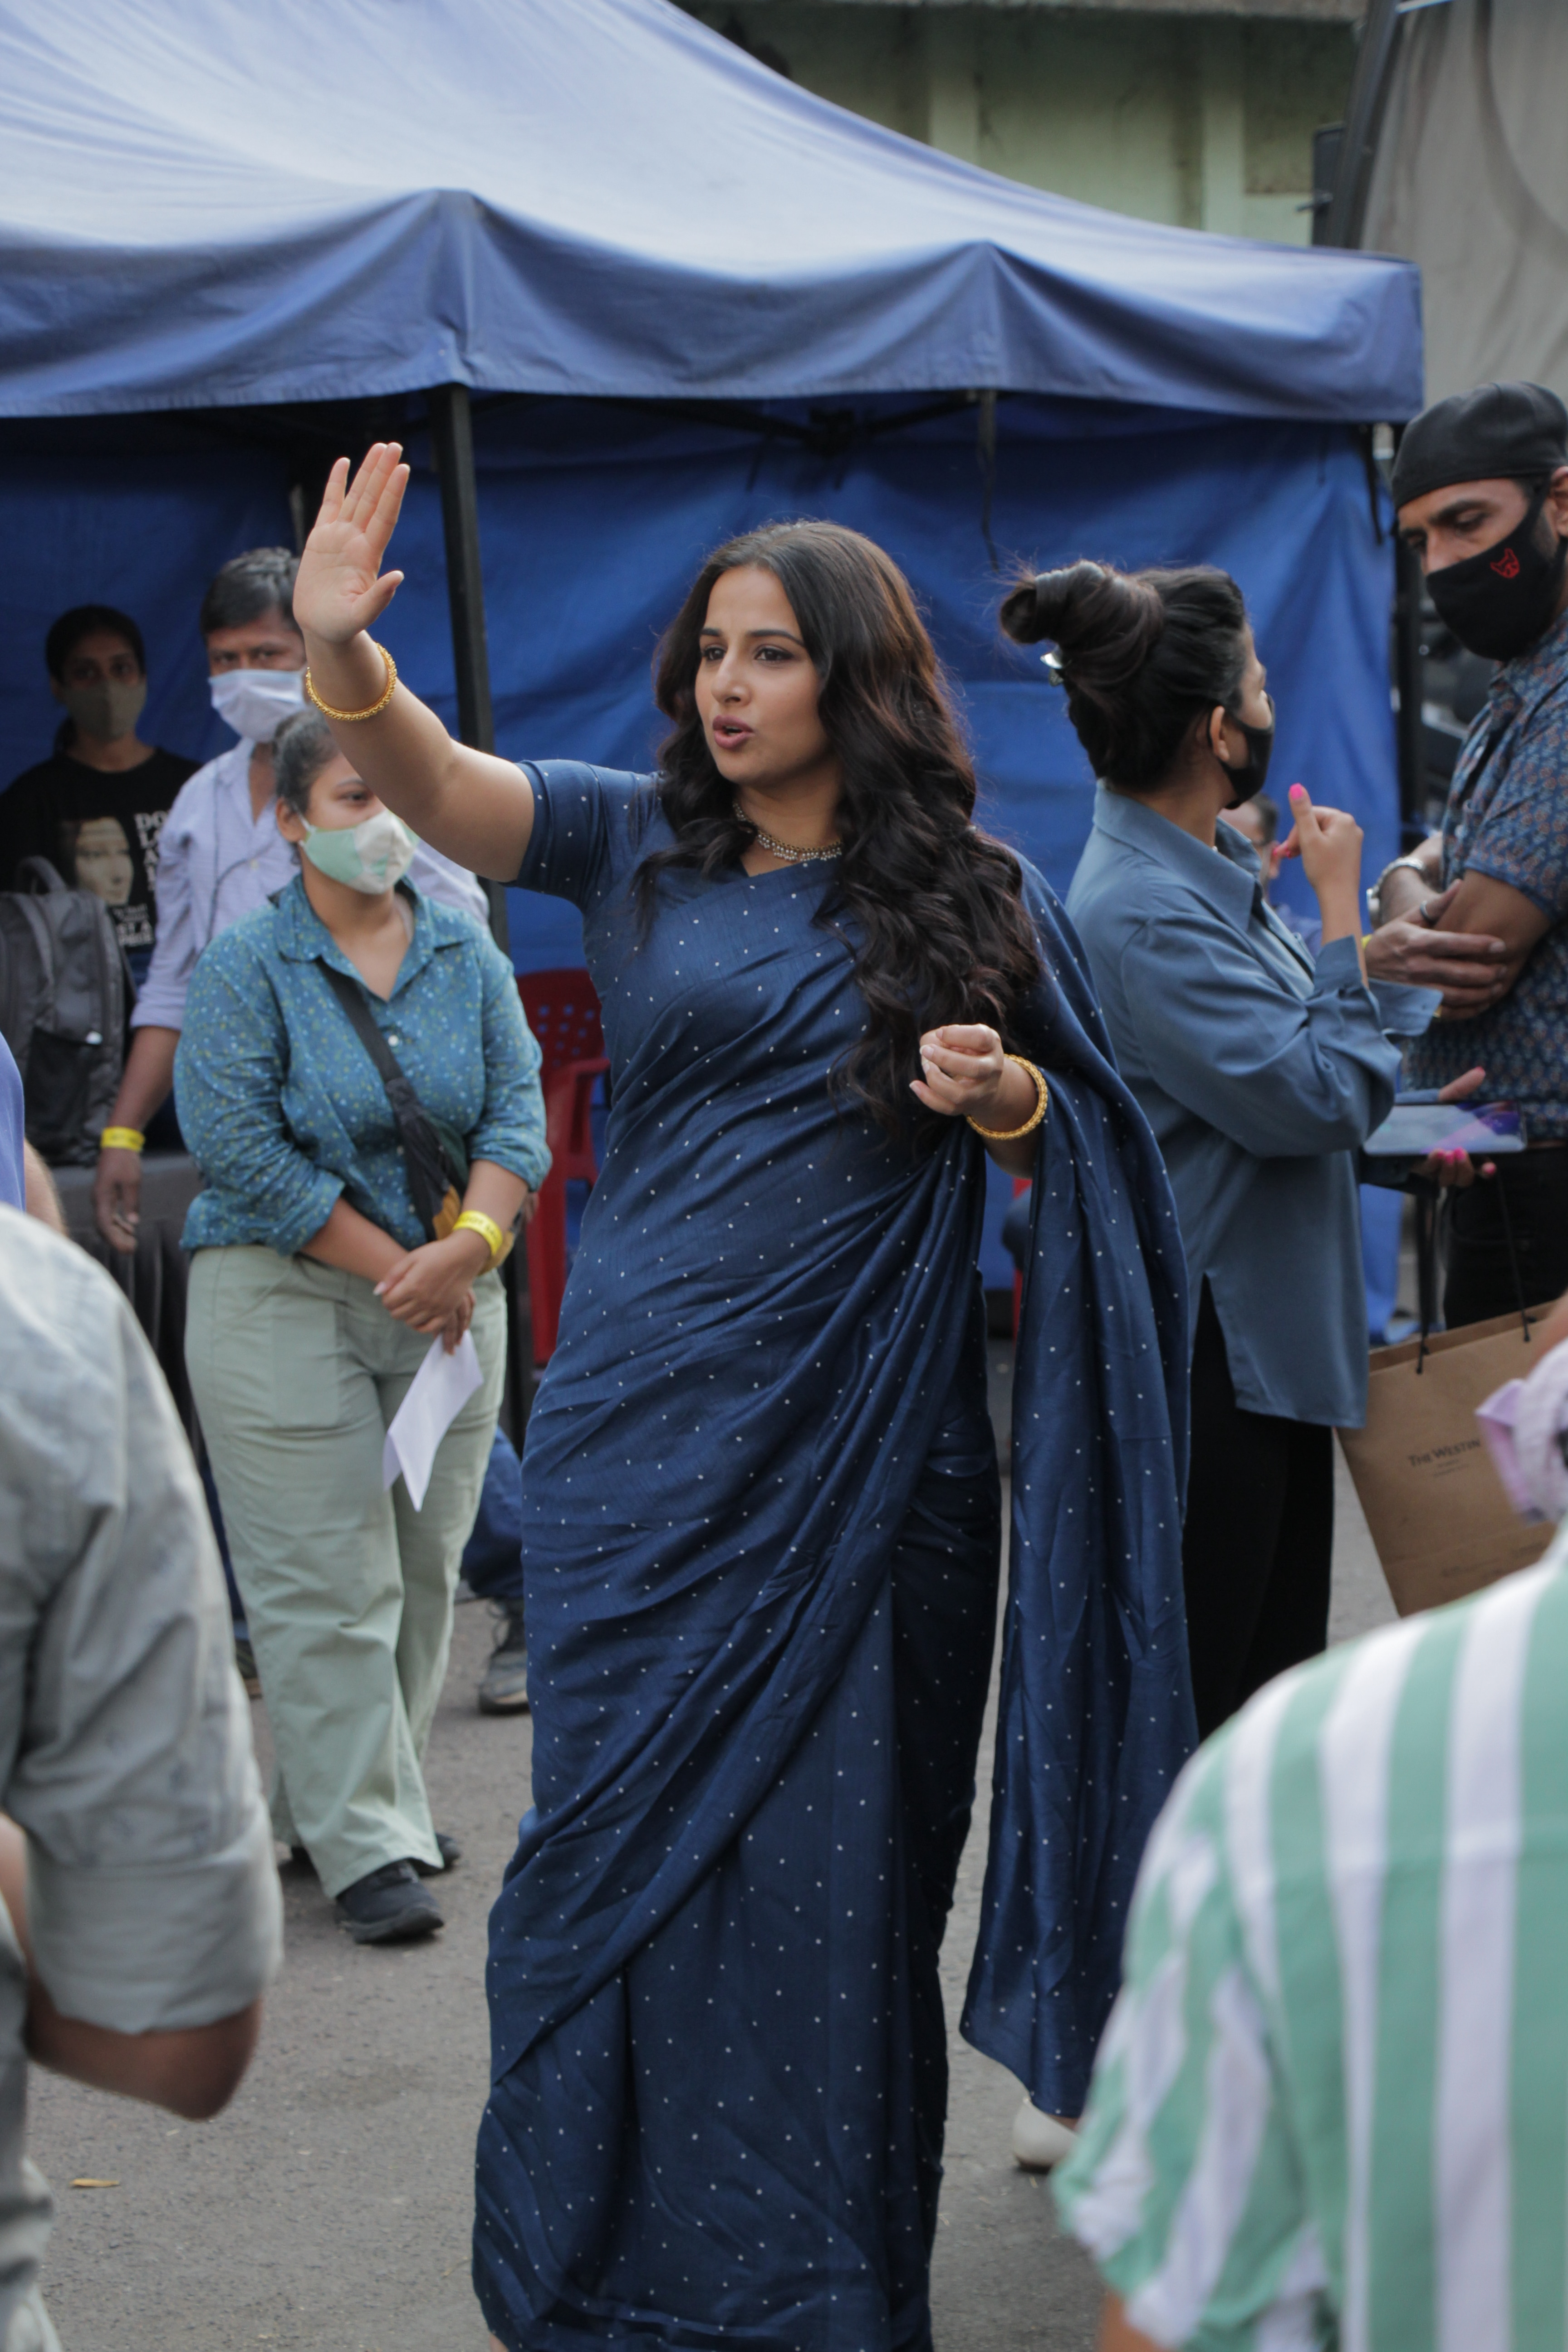 Actress Vidya Balan was spotted at a shooting set in the film city, Mumbai on Saturday.